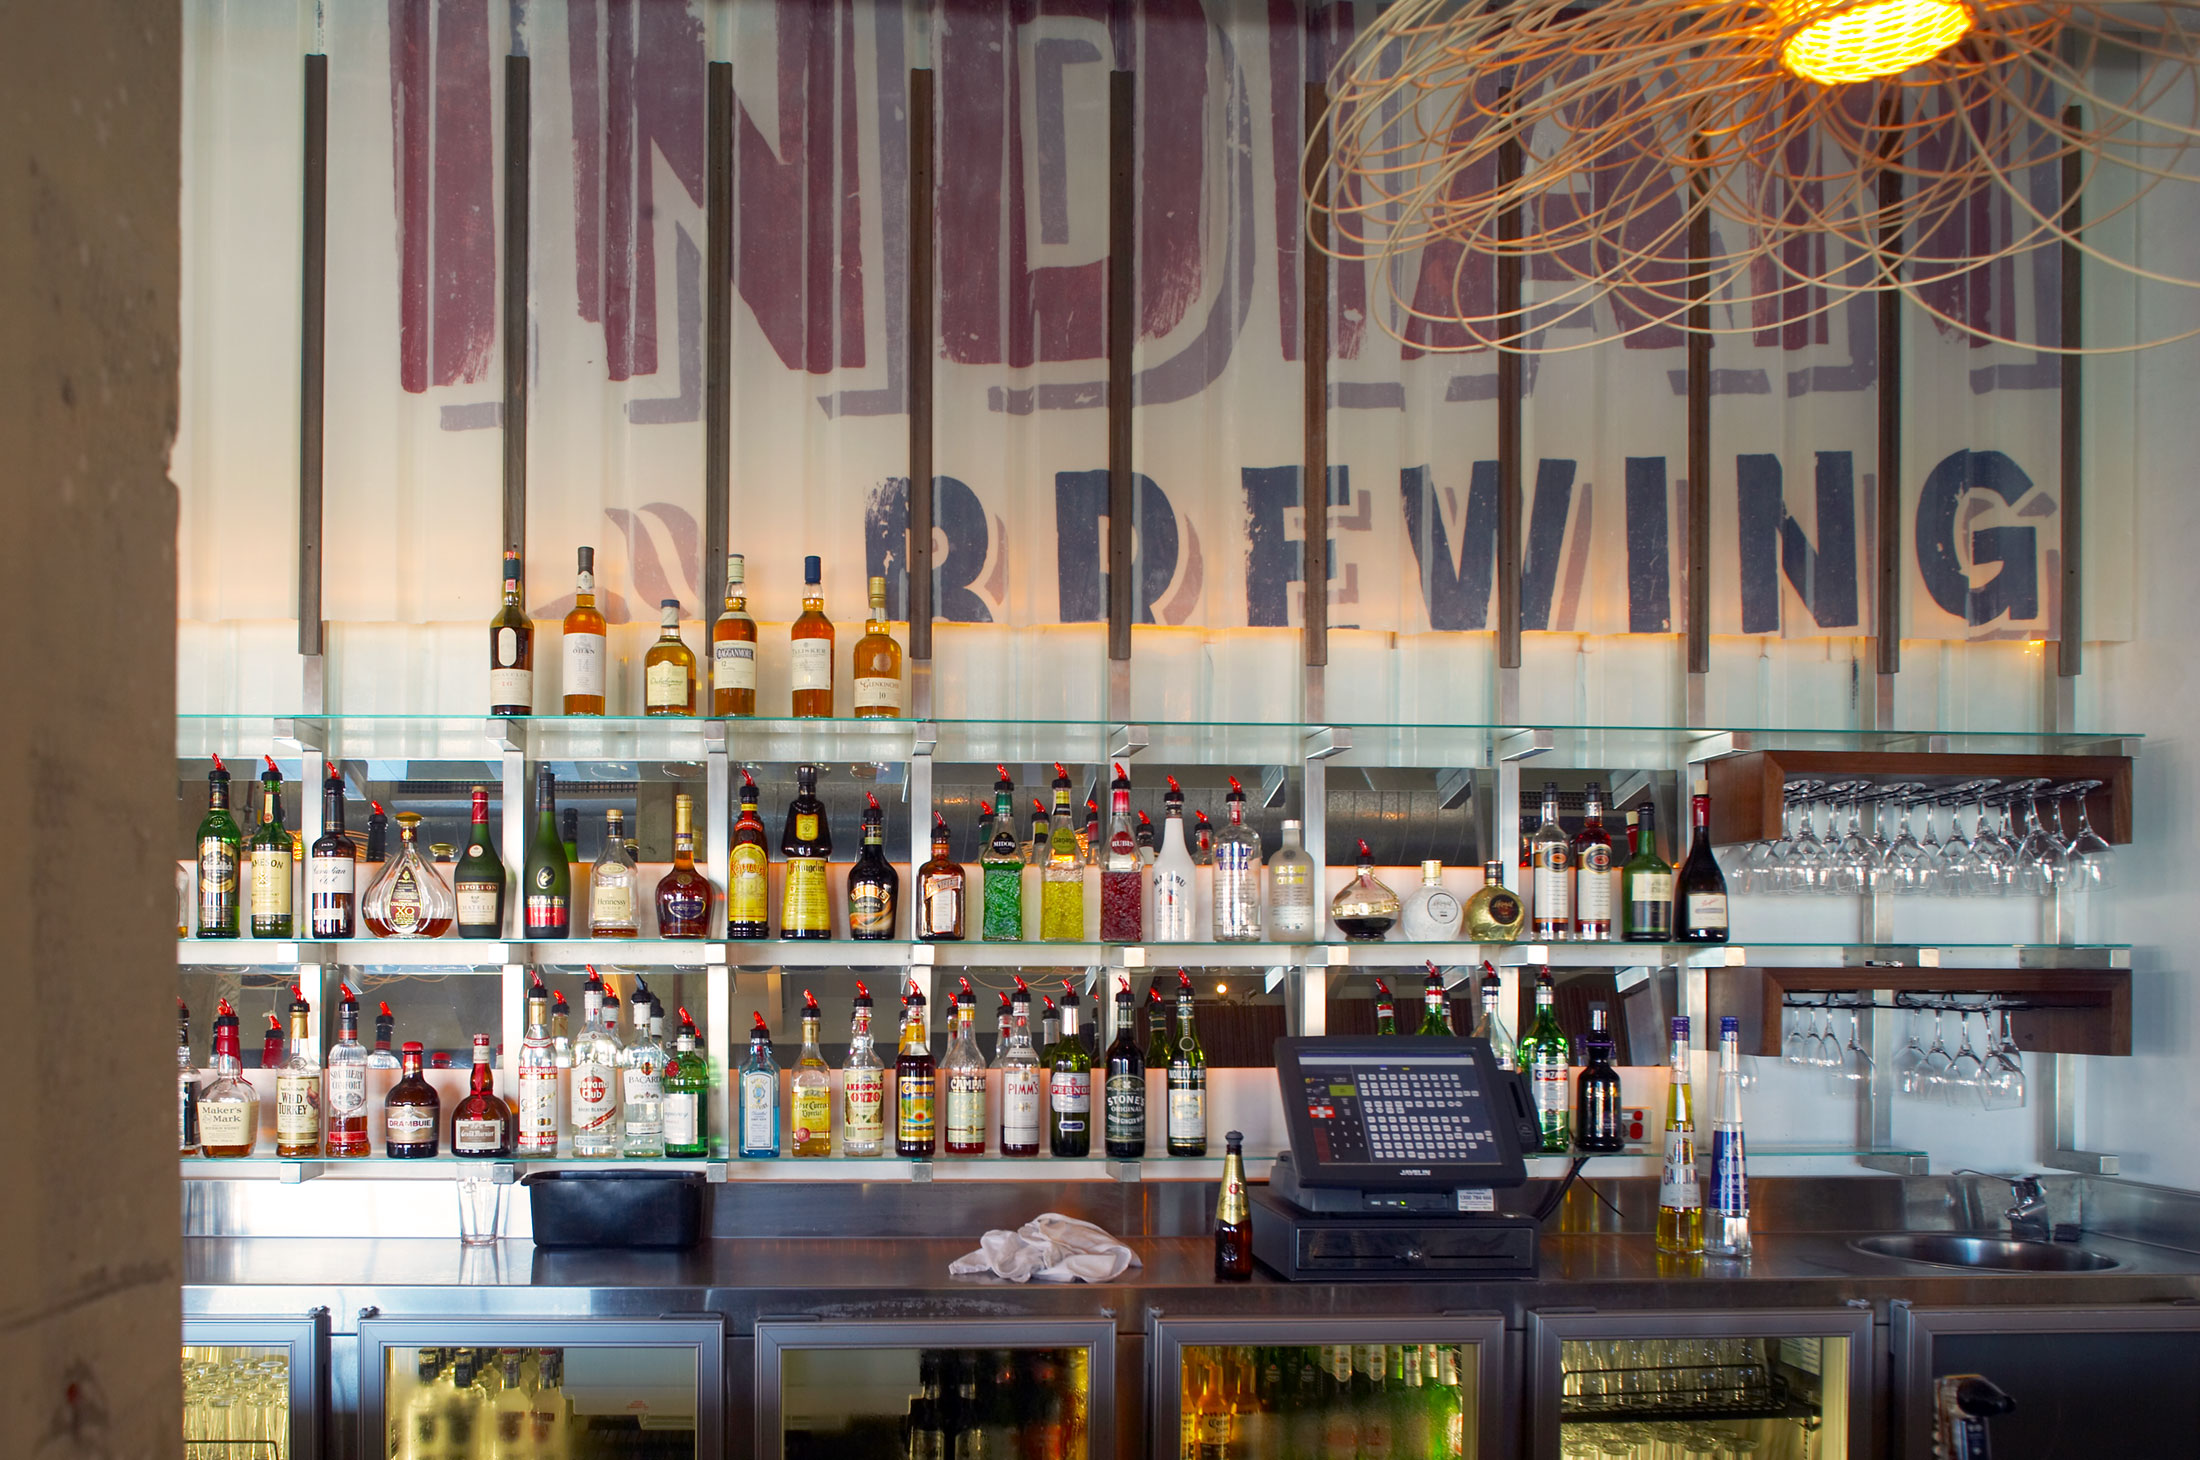 Indian Ocean Brewing Company –Bar Wall Graphic